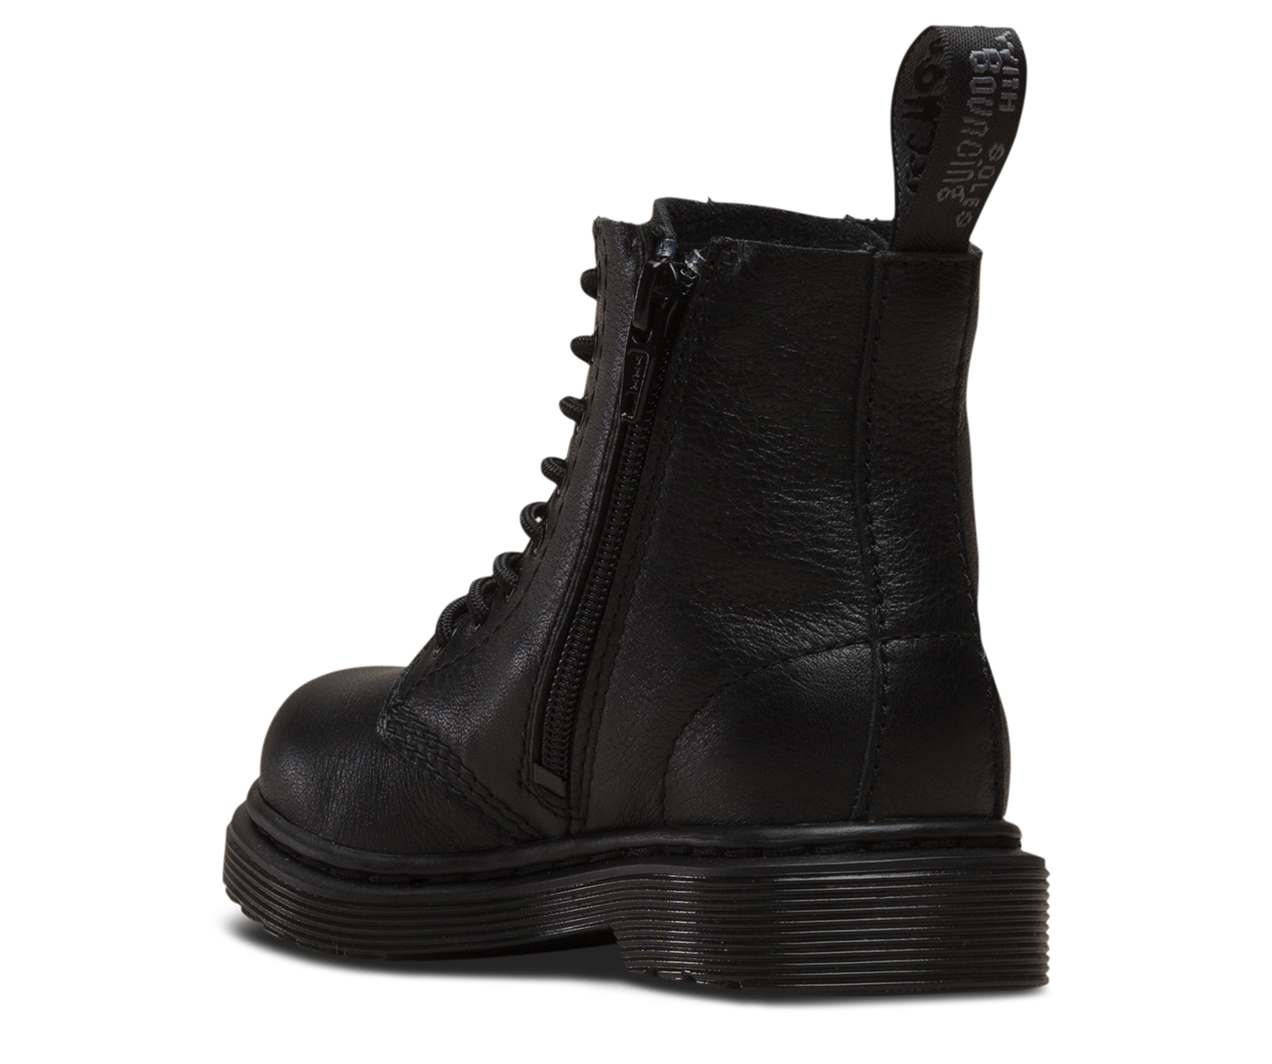 ece2313b90ca TODDLER MONO 1460 PASCAL | Gifts for Kids | Dr. Martens Official